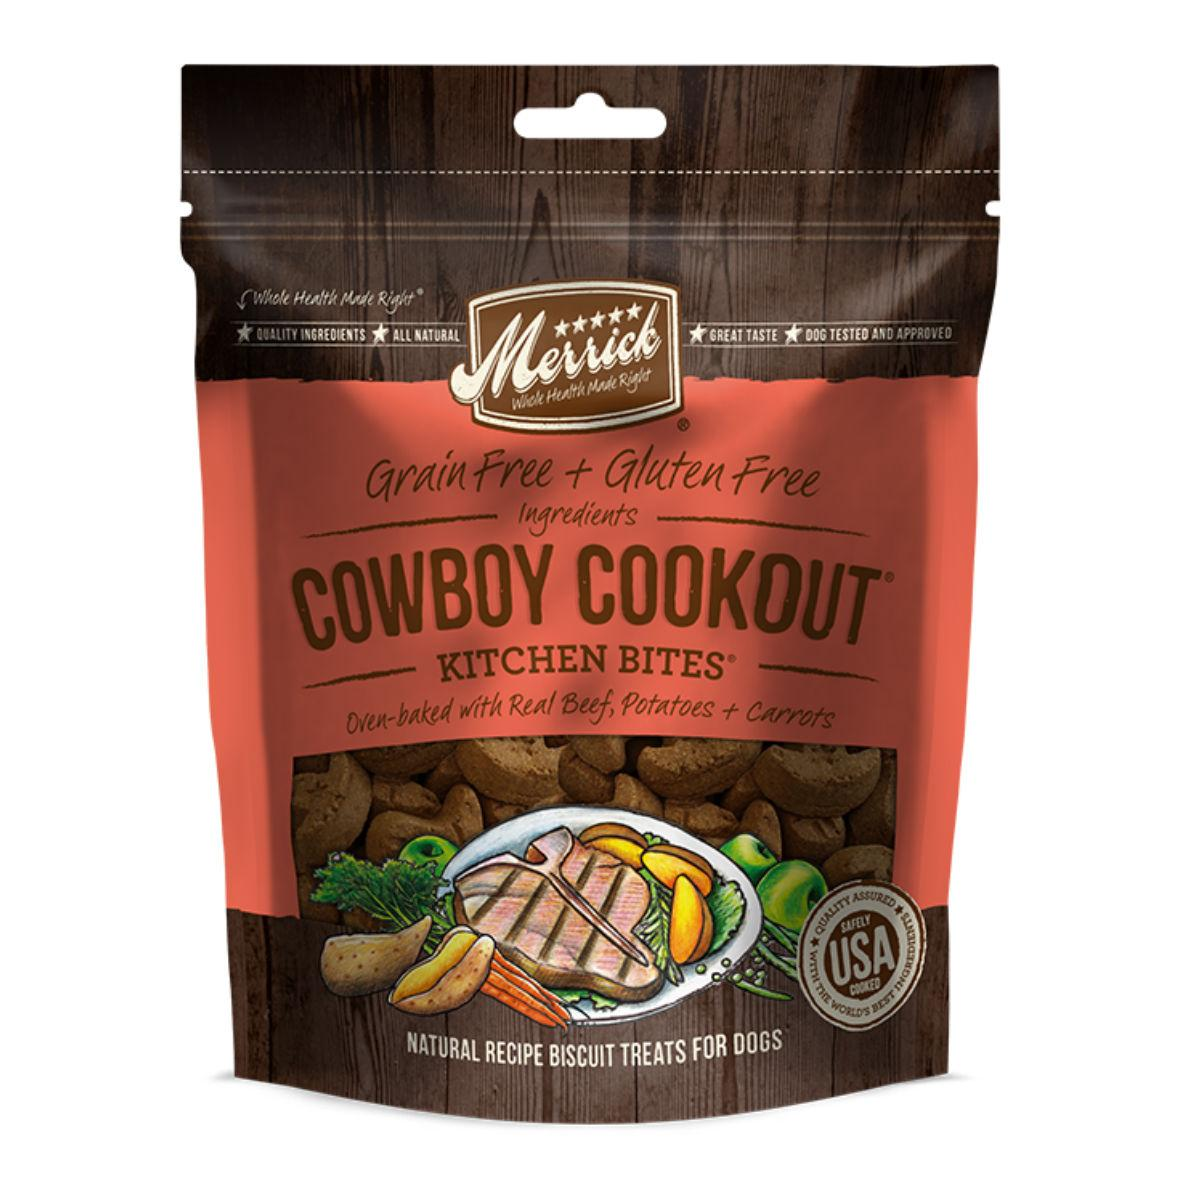 Merrick Kitchen Bites Oven Baked Dog Biscuits - Cowboy Cookout